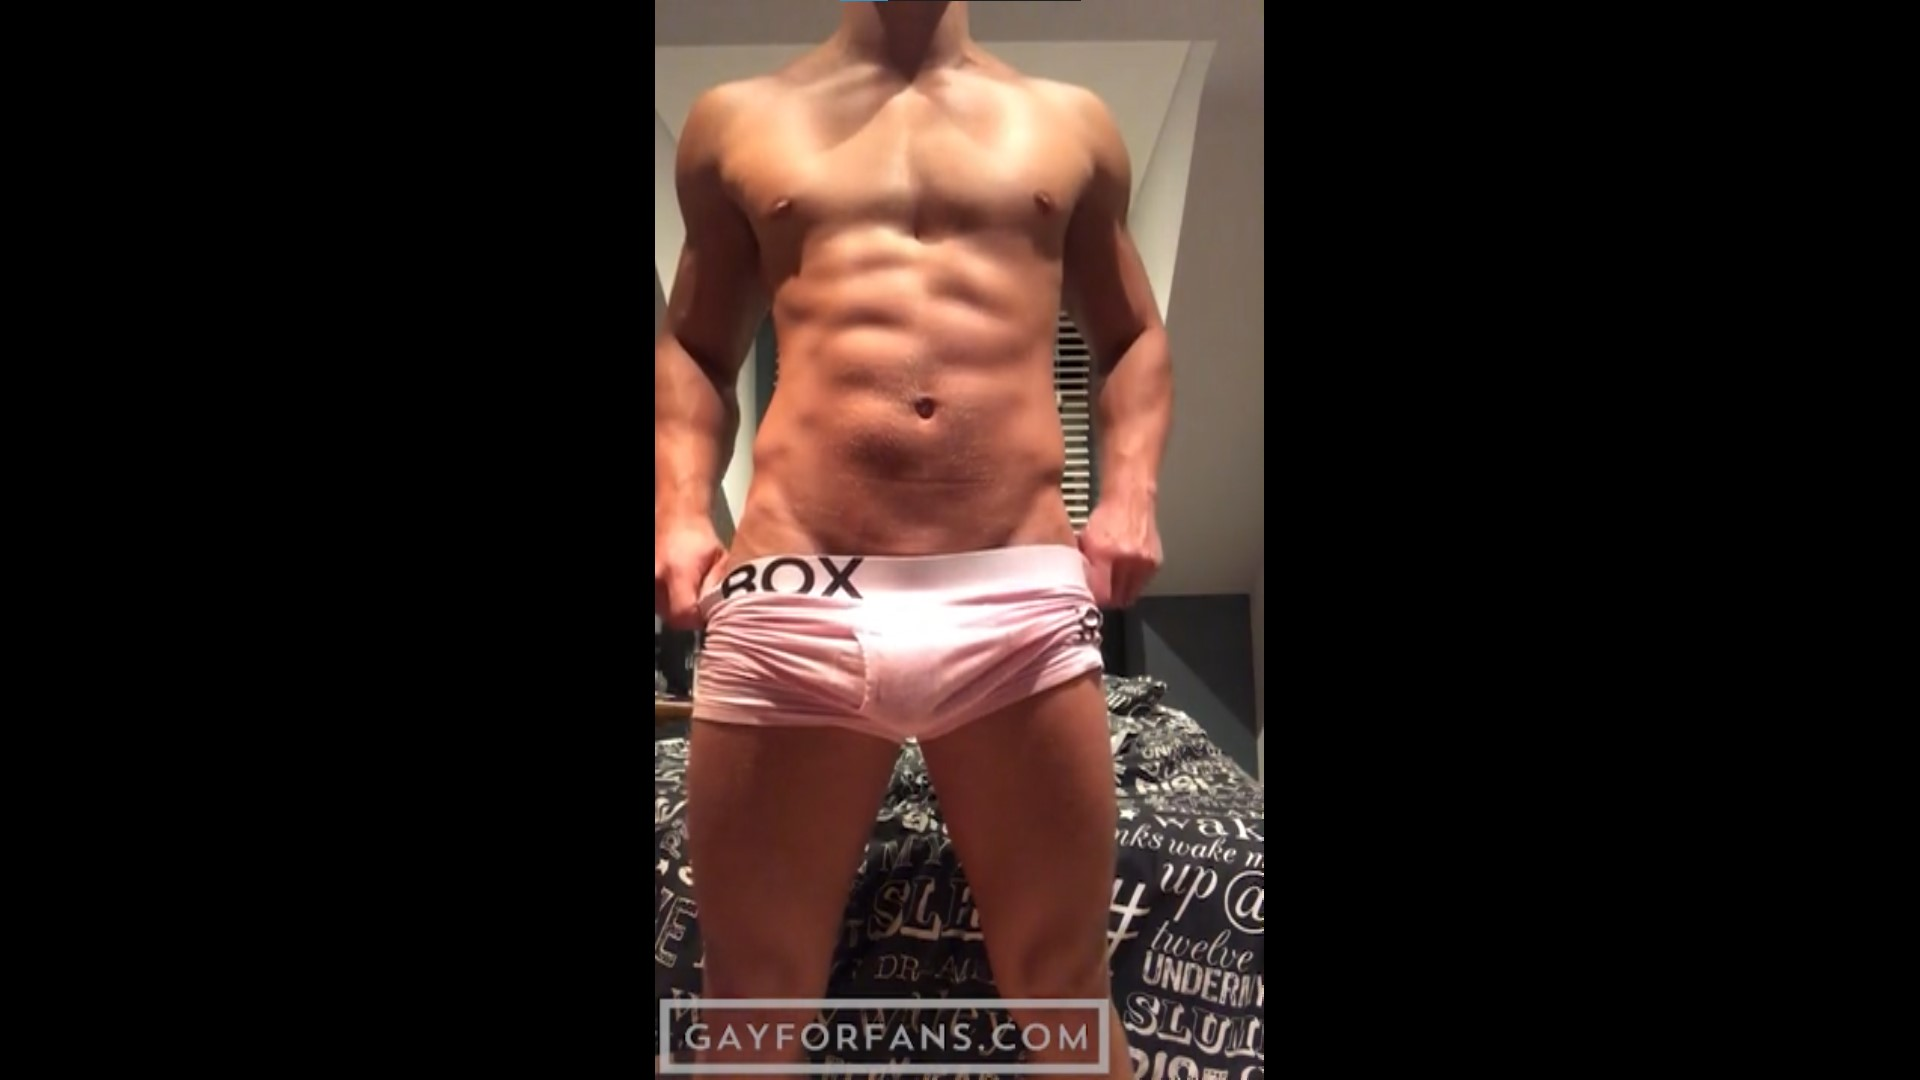 Showing off my body and cock - Peachy Boy